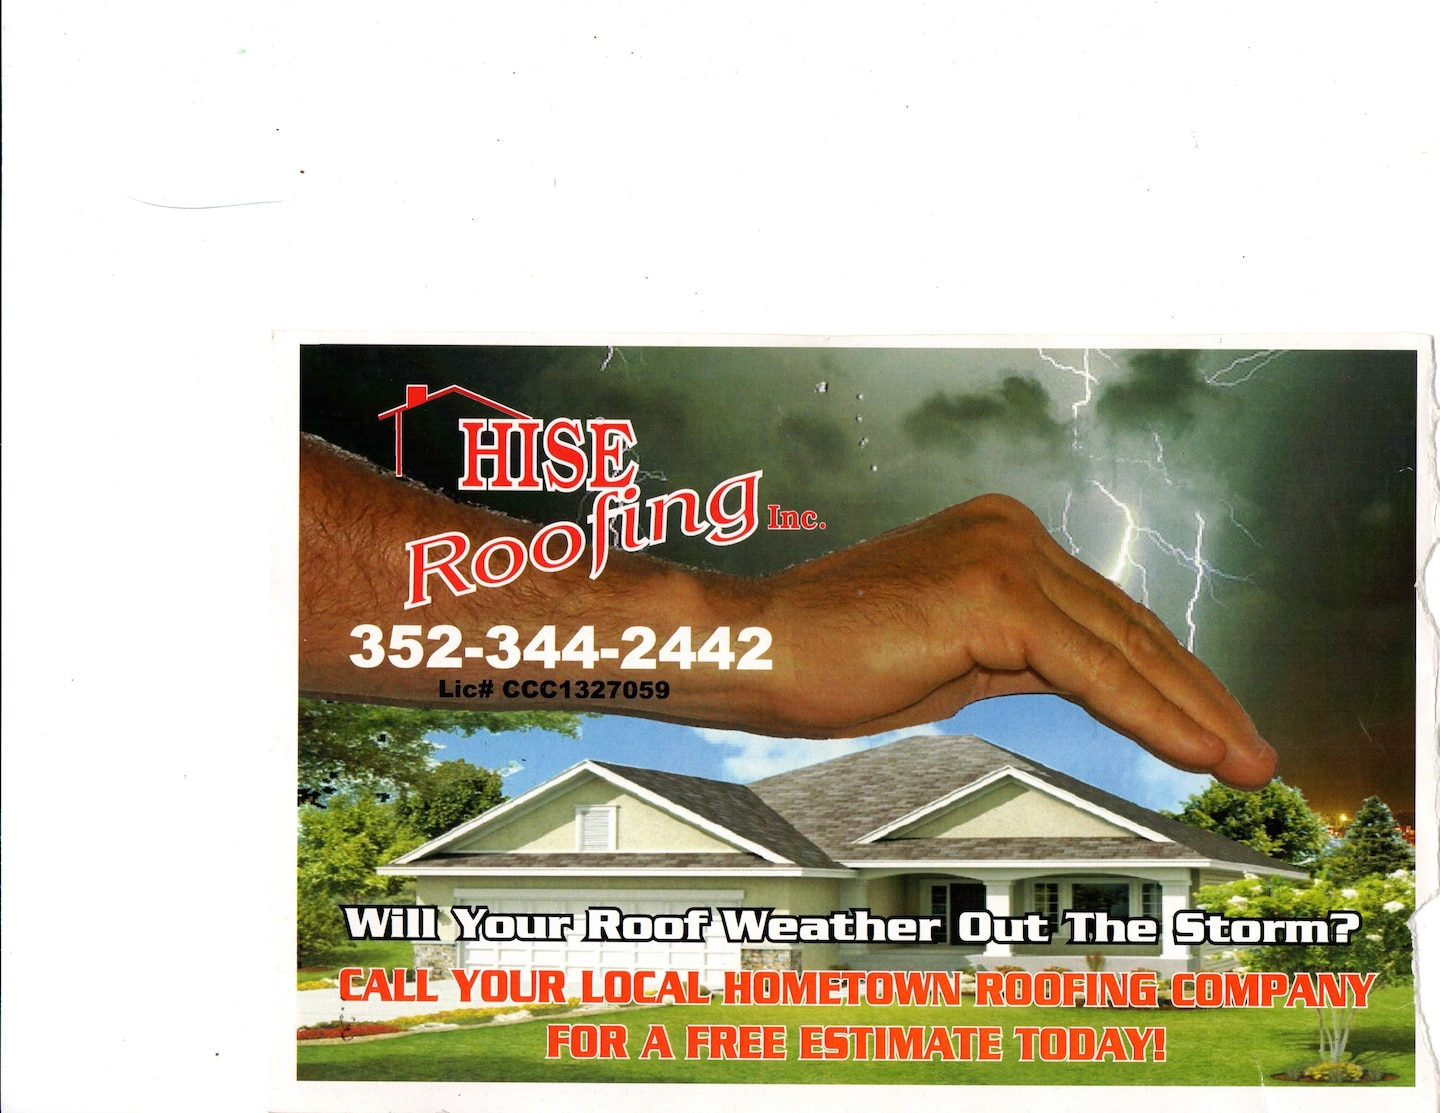 Hise Roofing